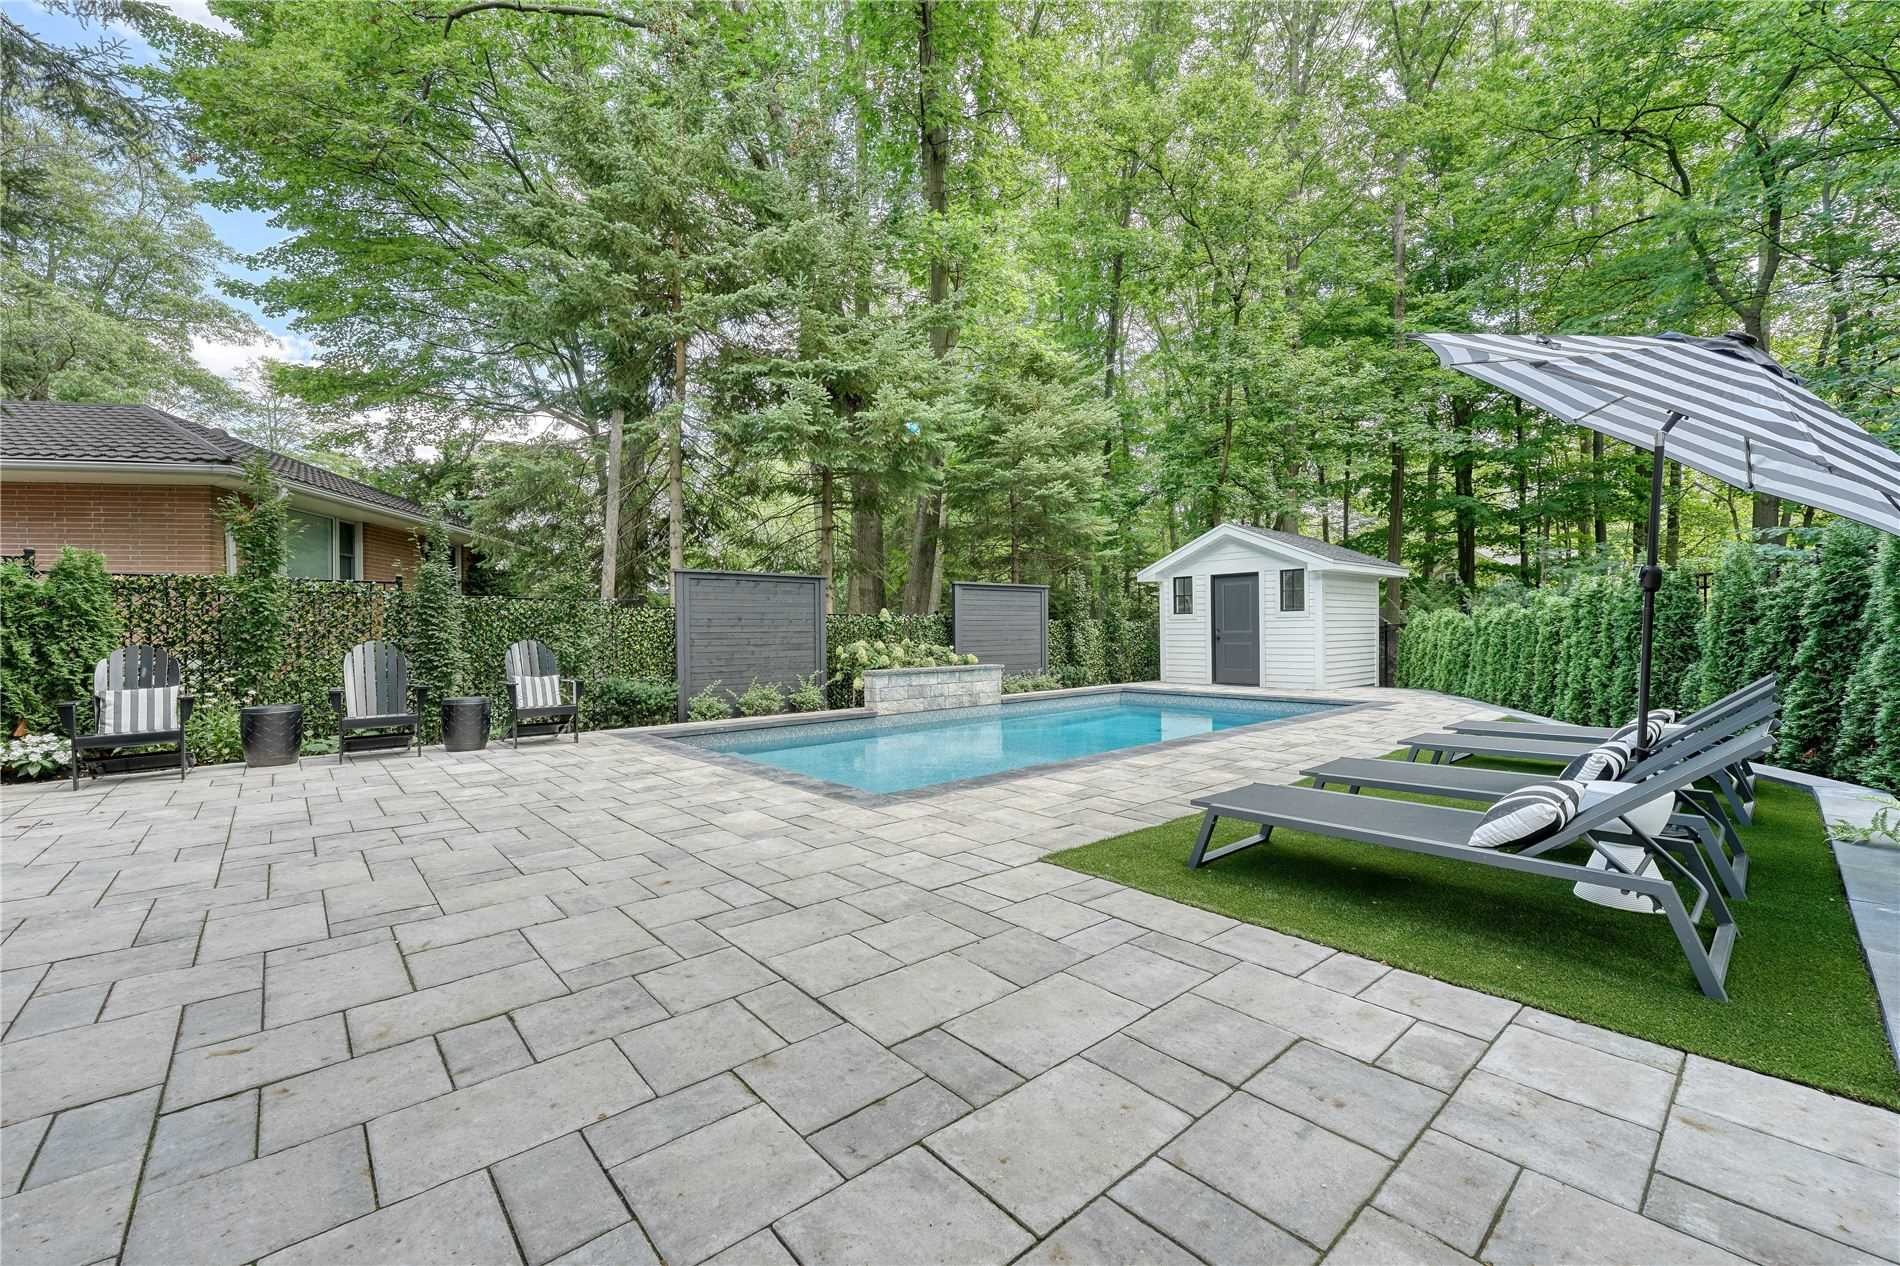 106 Oakes Dr, Mississauga, Ontario L5G3M1, 4 Bedrooms Bedrooms, 12 Rooms Rooms,5 BathroomsBathrooms,Detached,For Sale,Oakes,W5362721